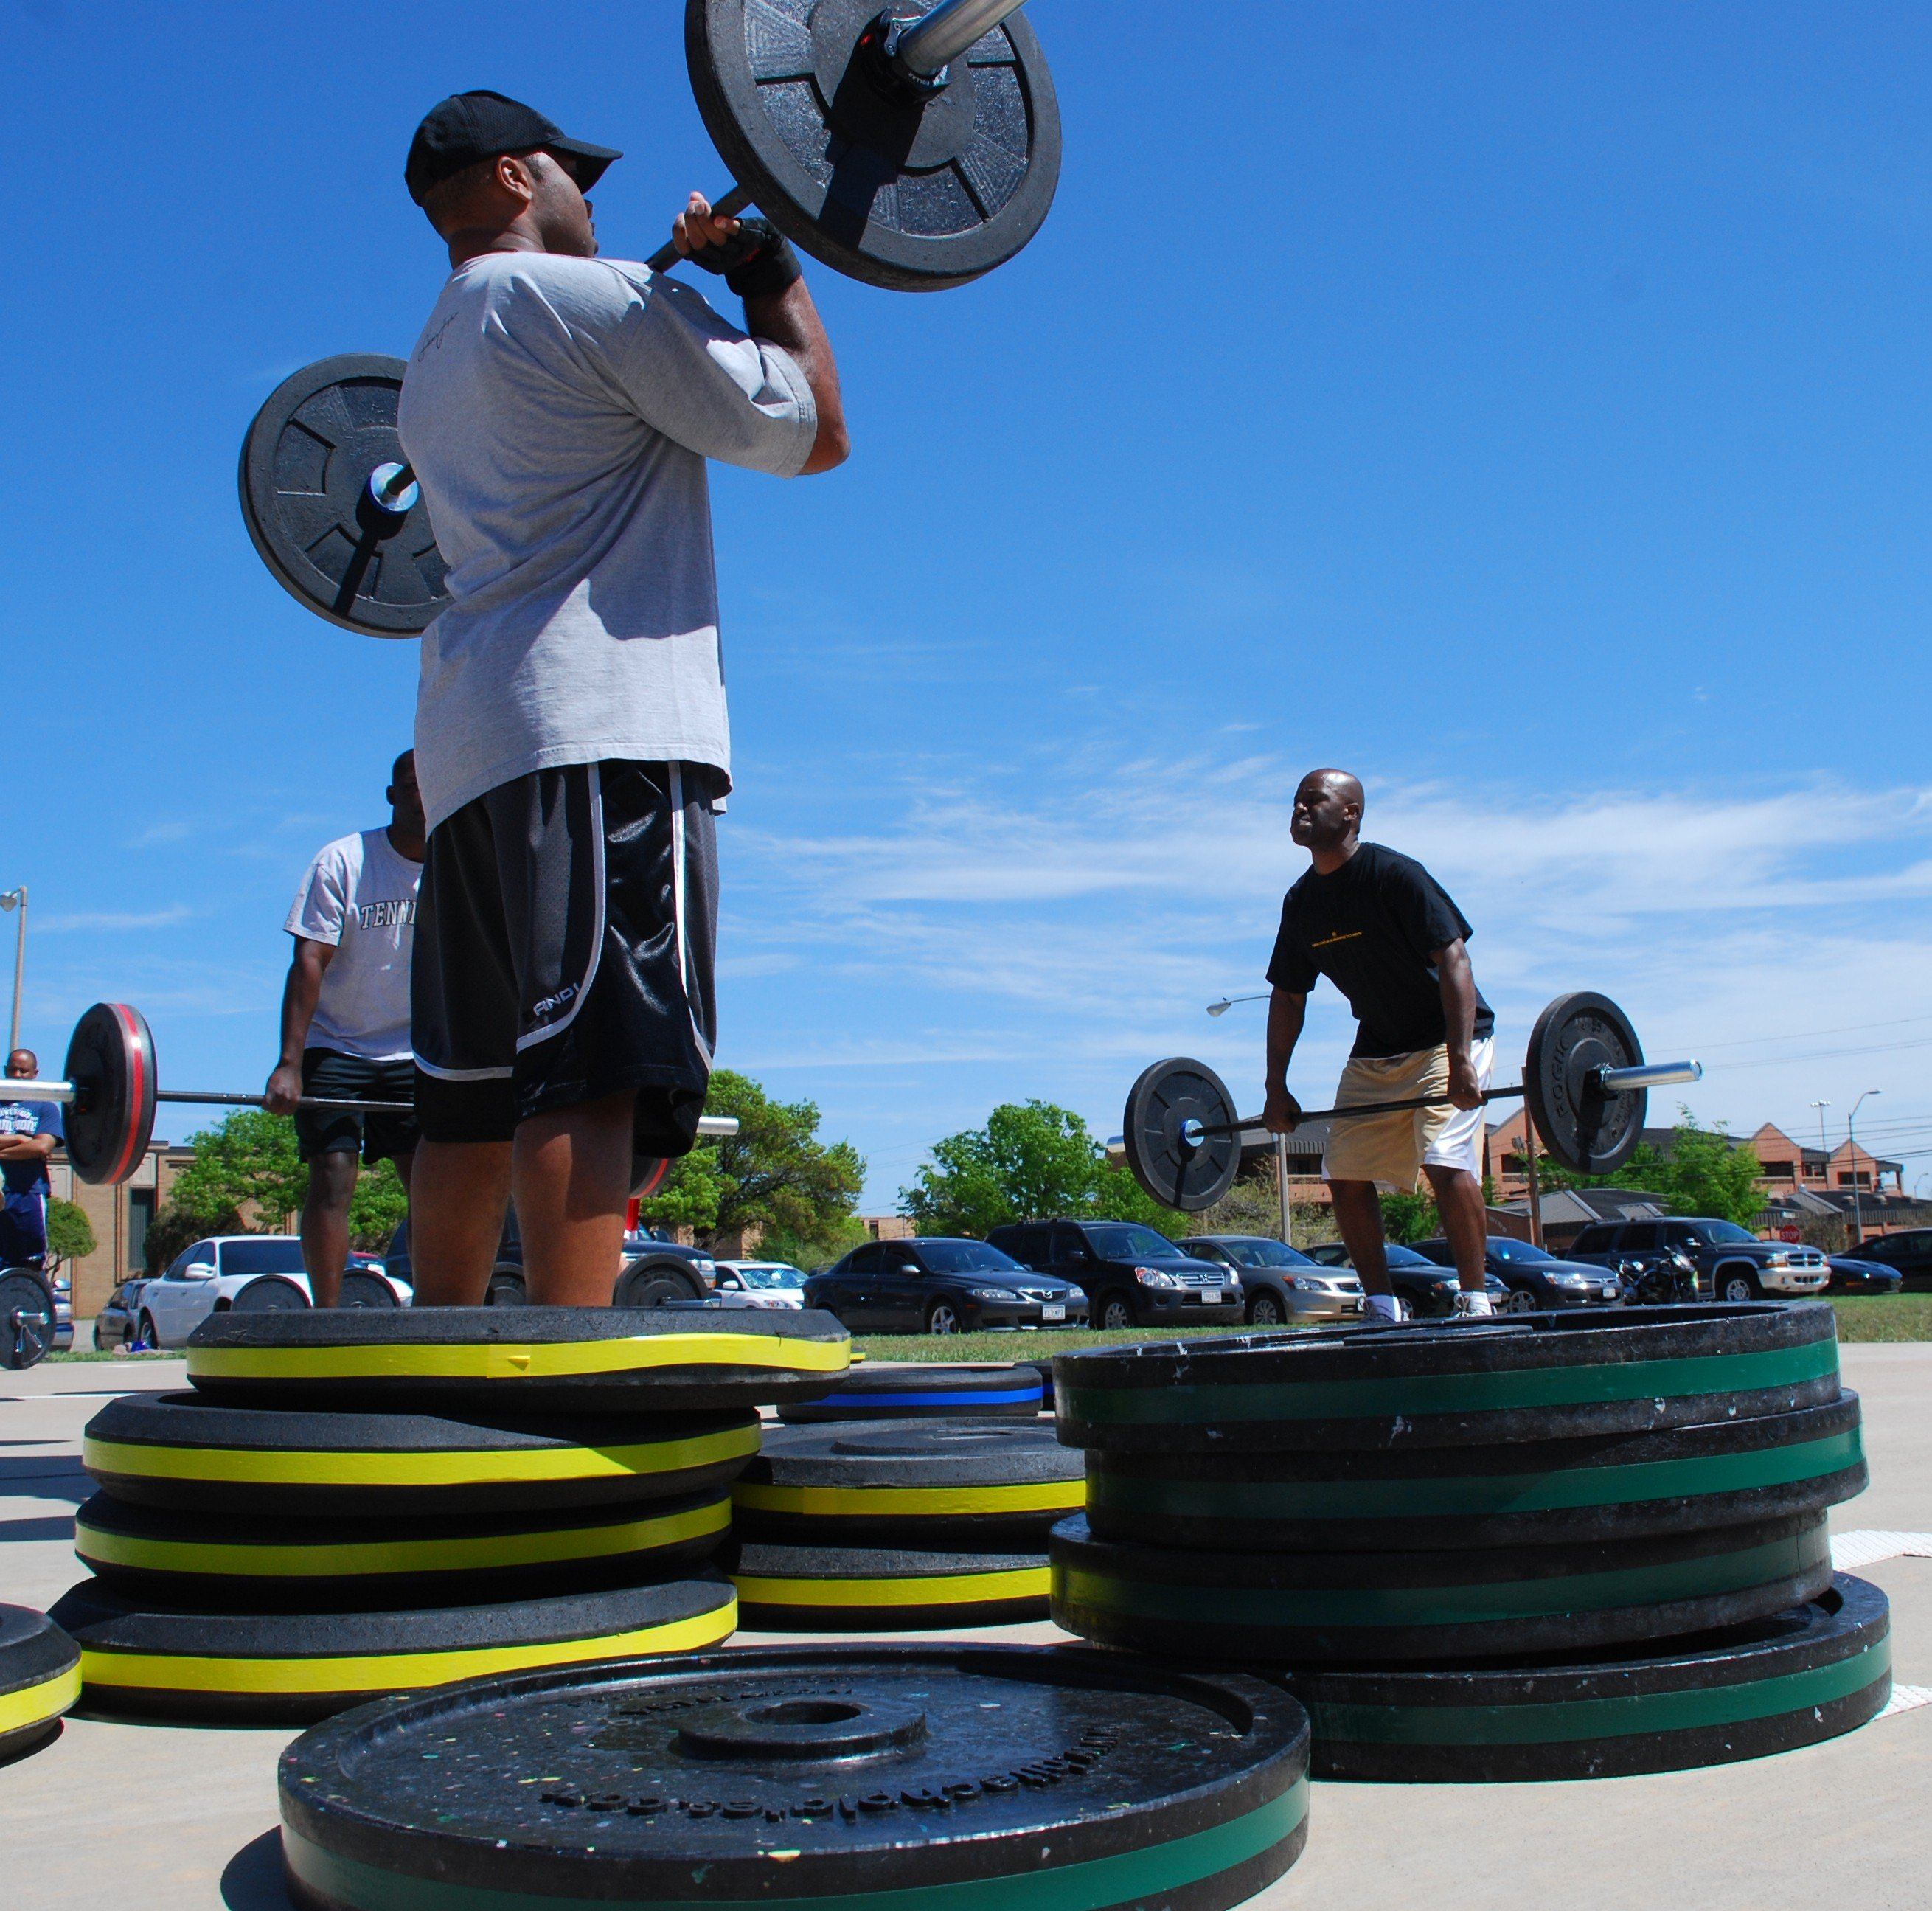 Olympic-style_weight_lifting_training